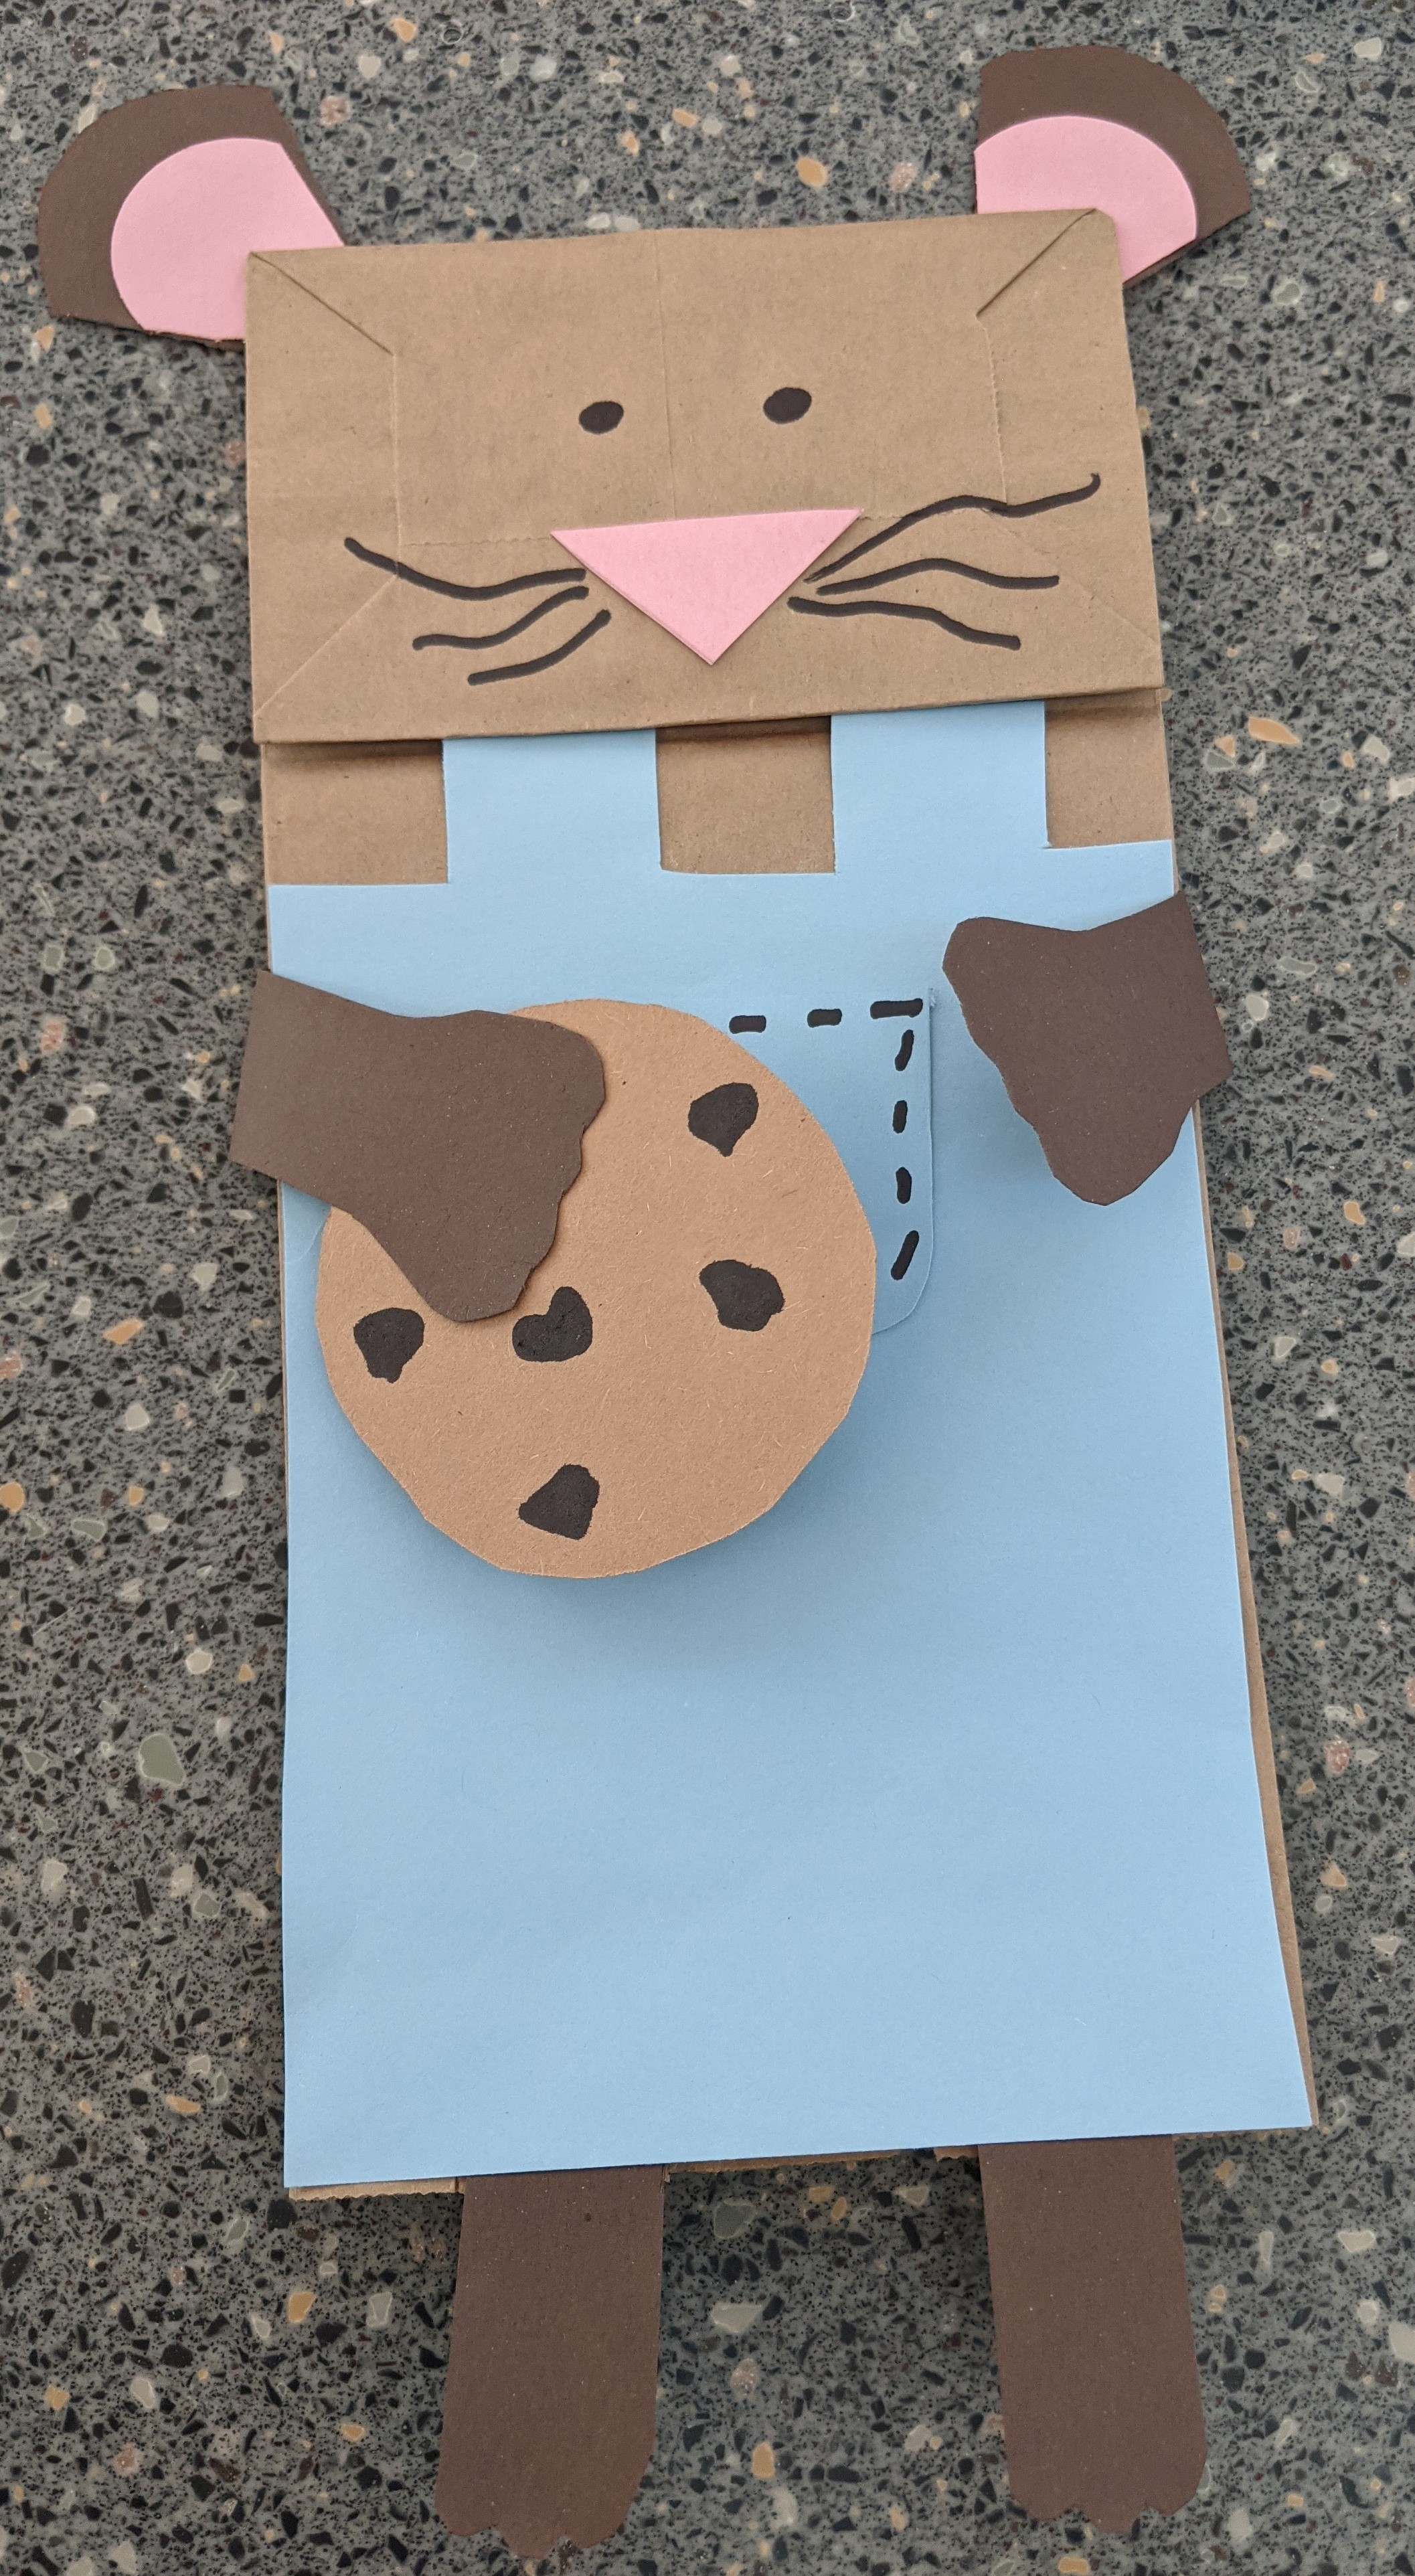 Image of child craft of a mouse made from paper bag and other supplies